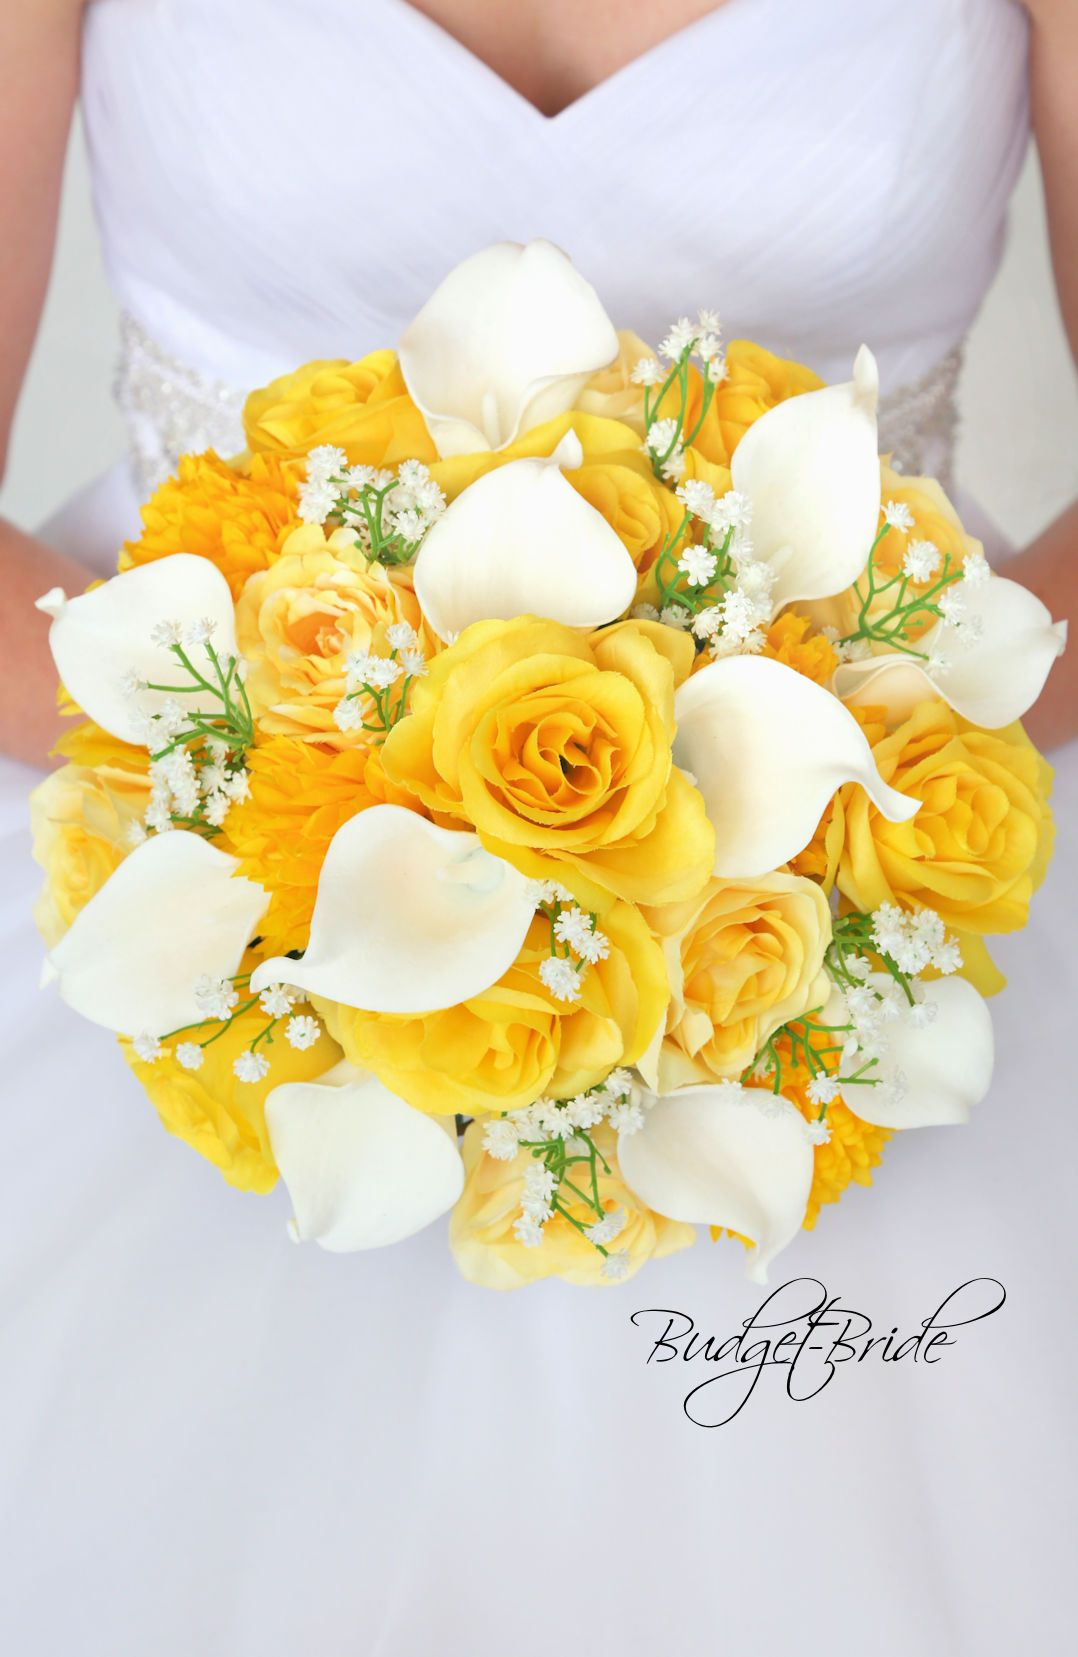 Buttercup Davids Bridal Wedding Bouquet In Yellow And White With